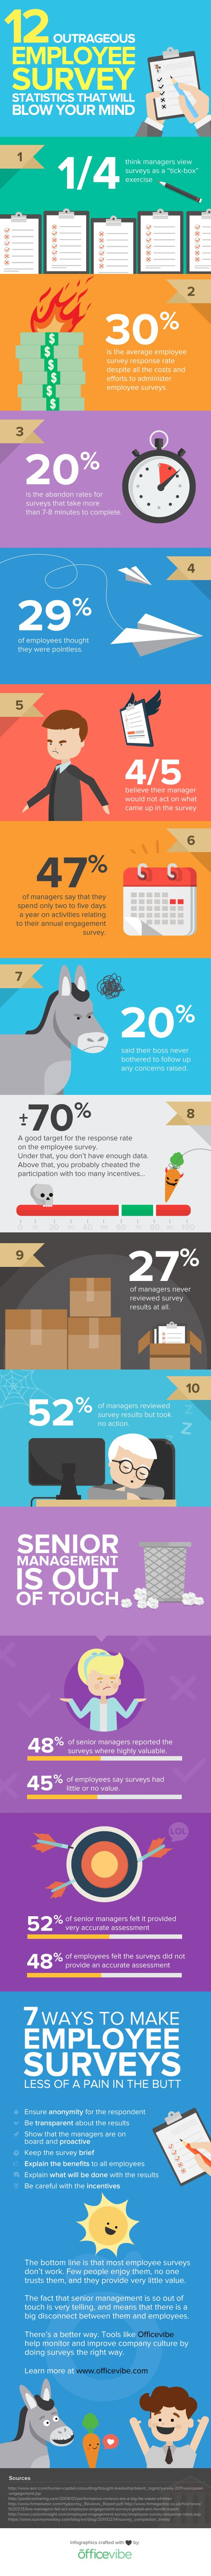 12 Outrageous Employee Survey Statistics That Will Blow Your Mind  - OfficeVibe http://www.officevibe.com/blog/employee-surveys-infographic